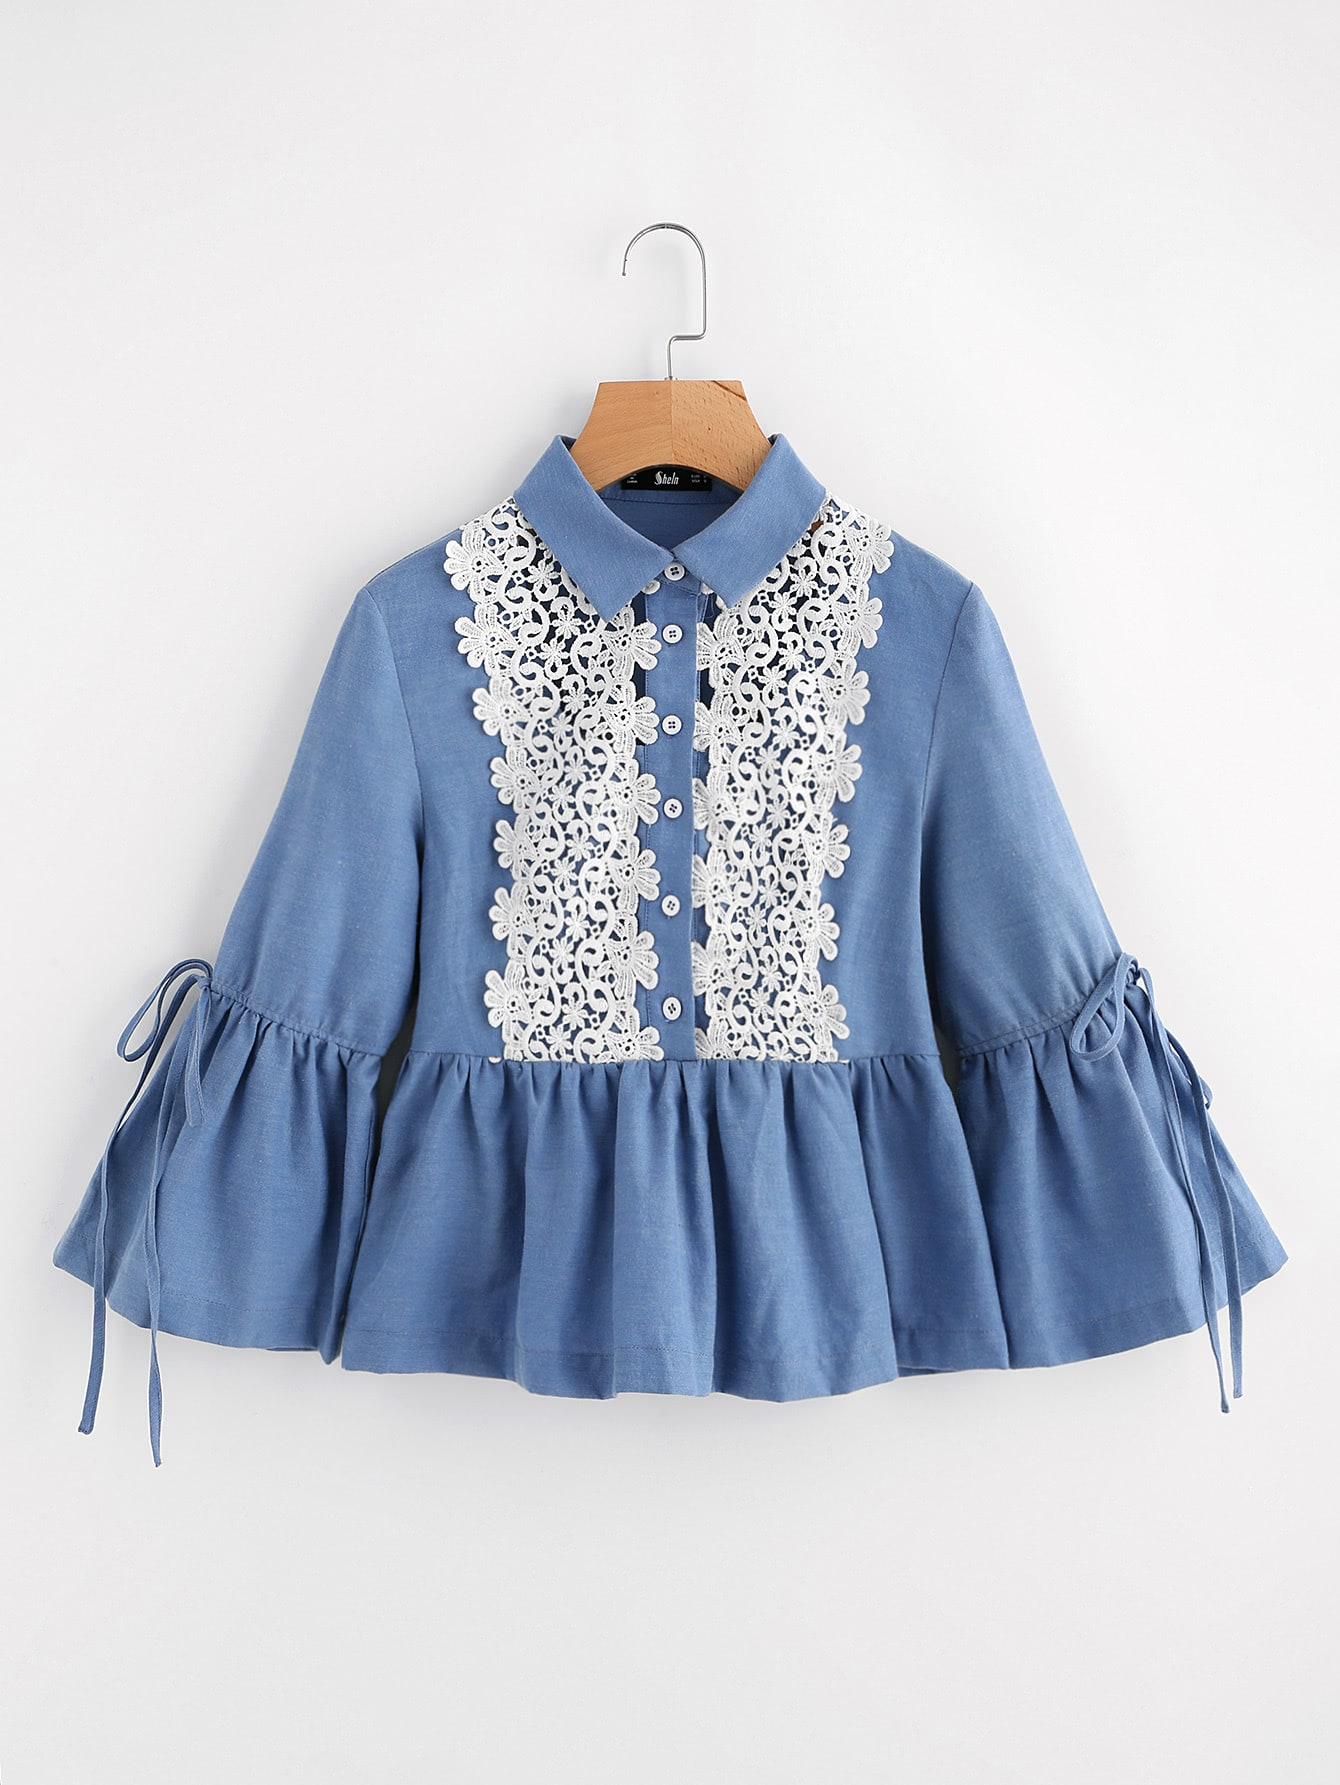 Drawstring Fluted Sleeve Lace Applique Peplum Blouse пальто troll пальто короткие